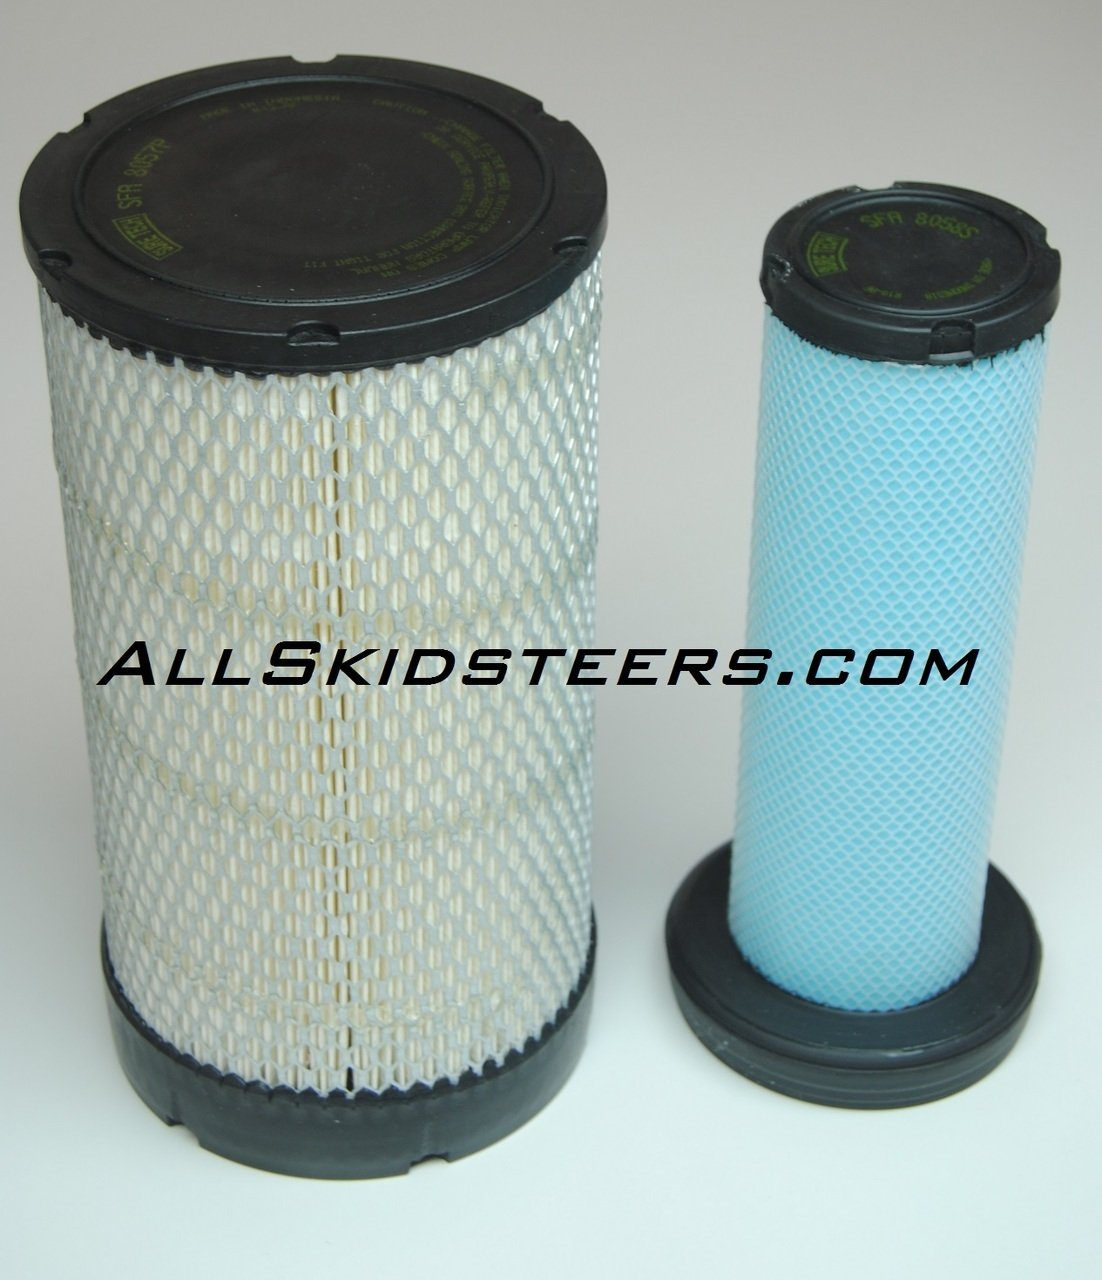 Engine Air Filter Kit for Bobcat Skid Steers | Replaces OEM #s 6698058 & 6698057 by All Skidsteers